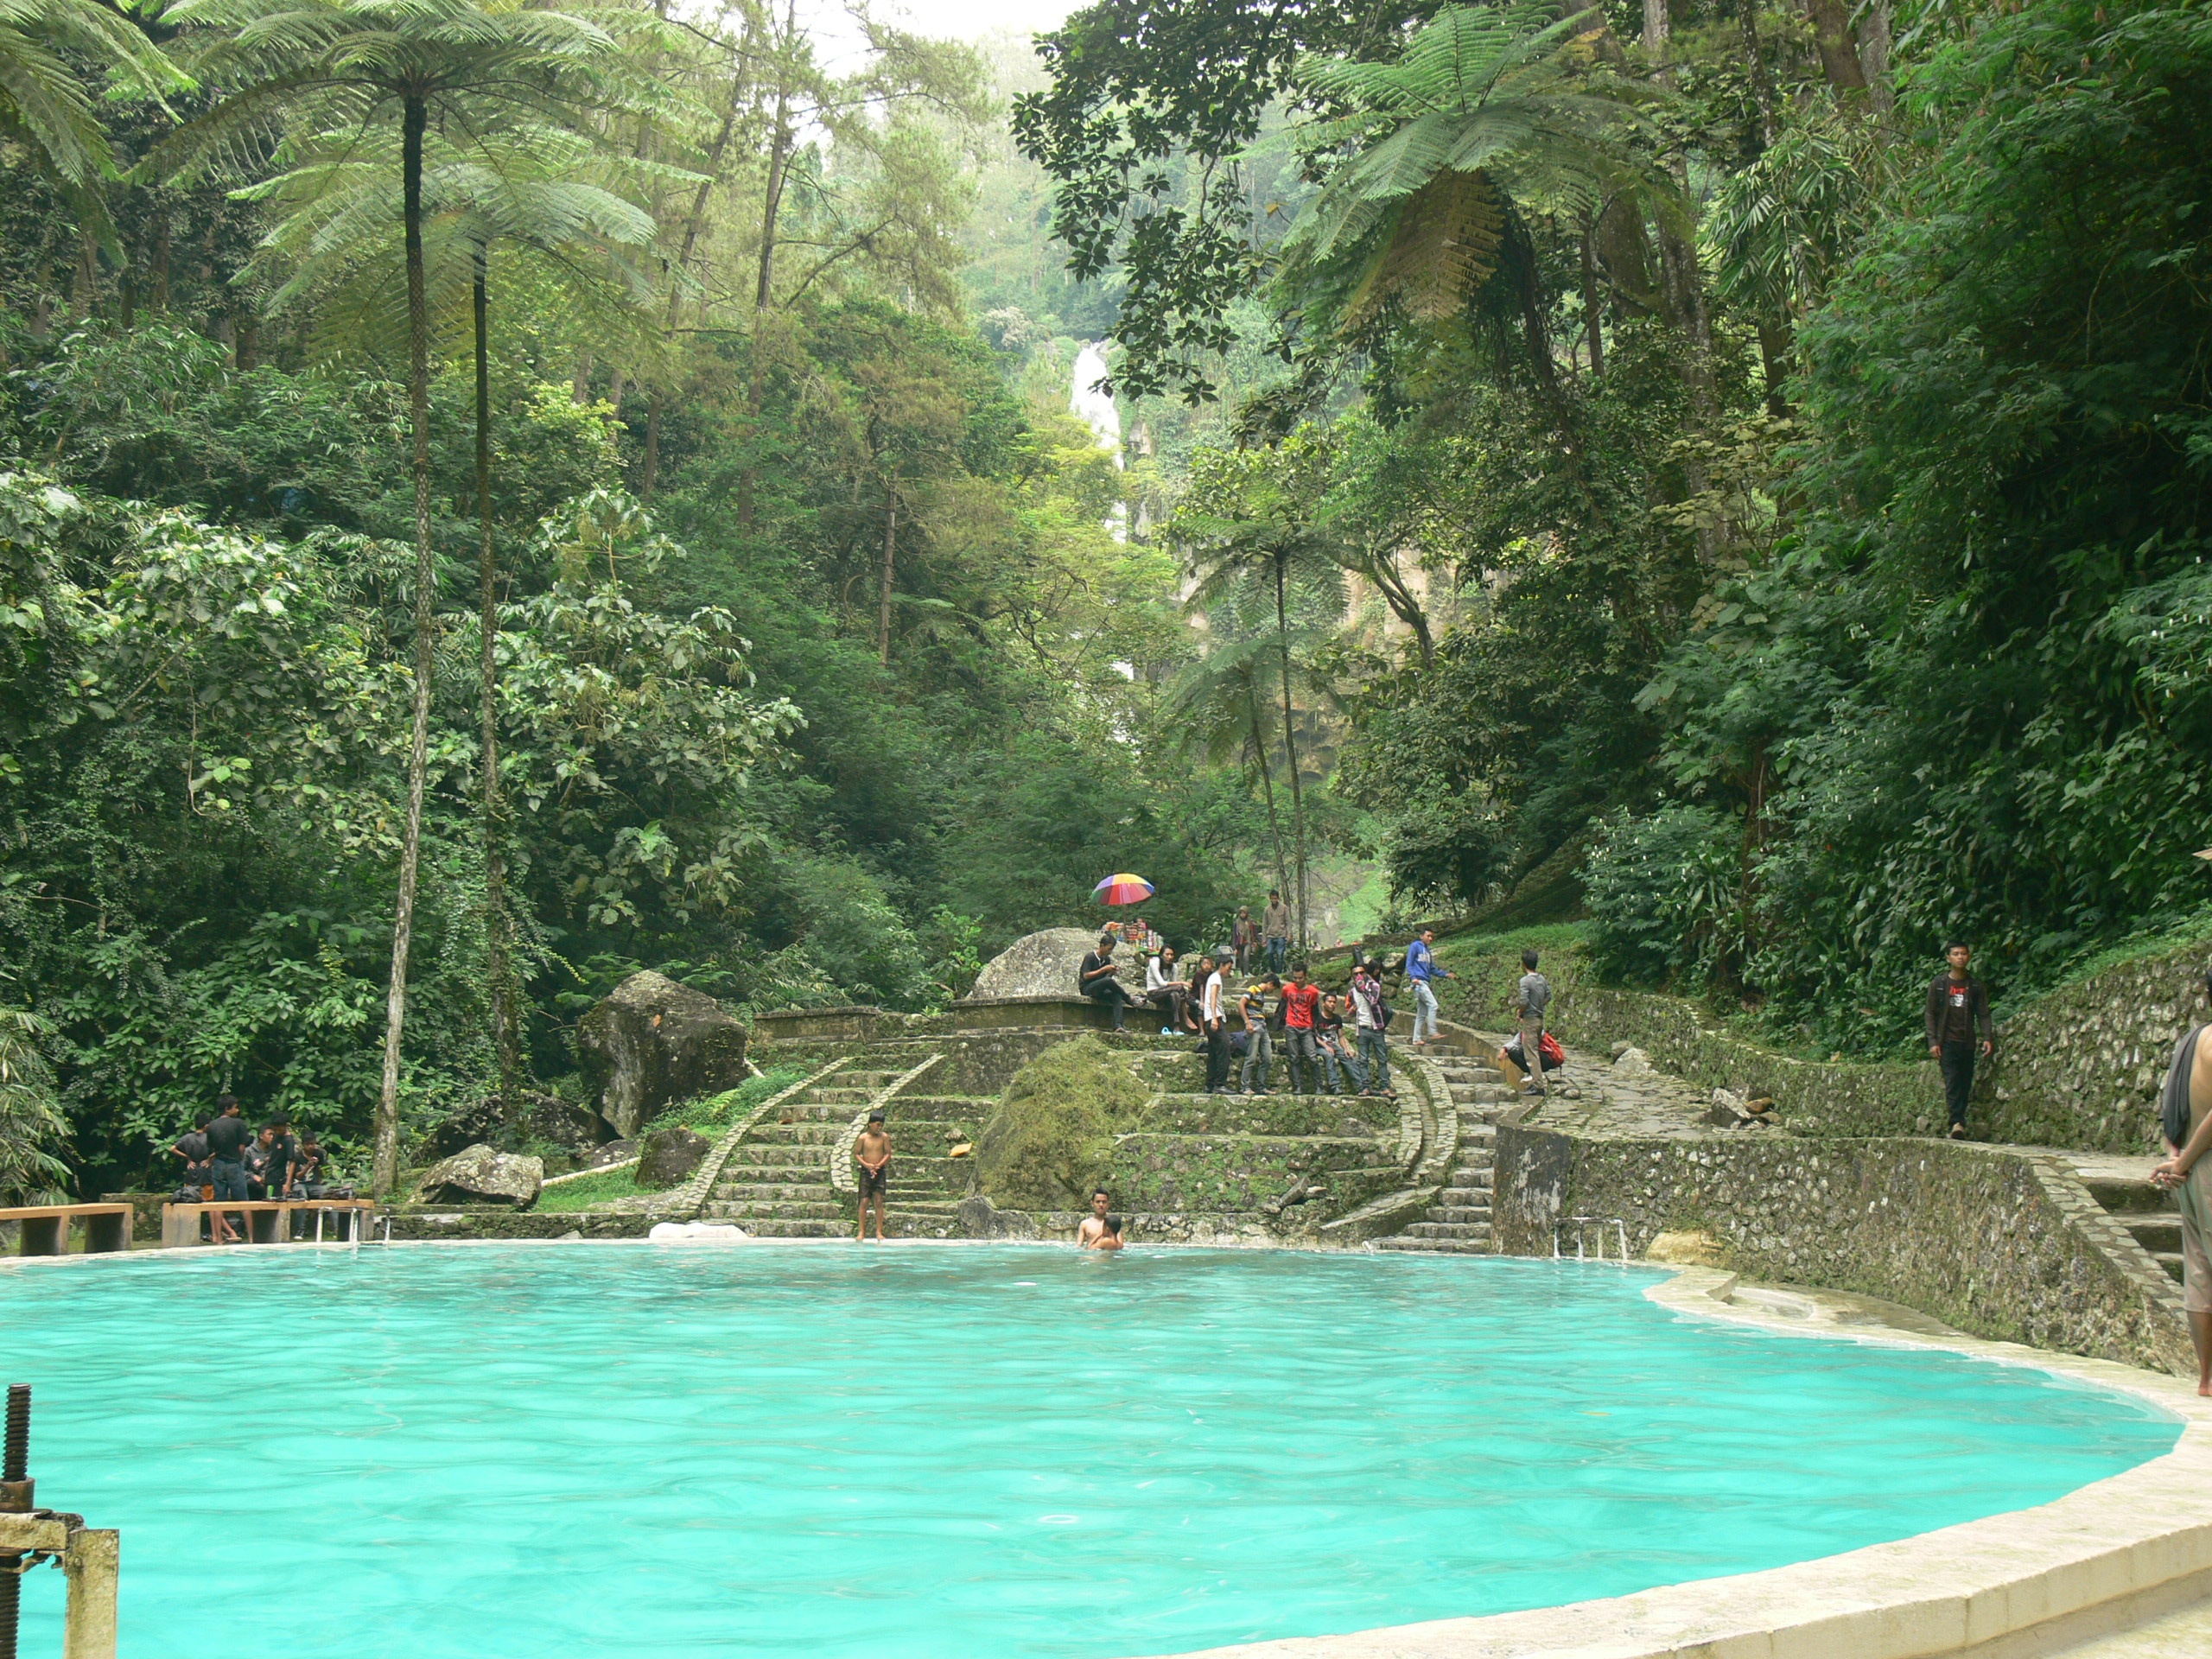 Swimming_pool_in_Tawangmangu,_Central_Ja